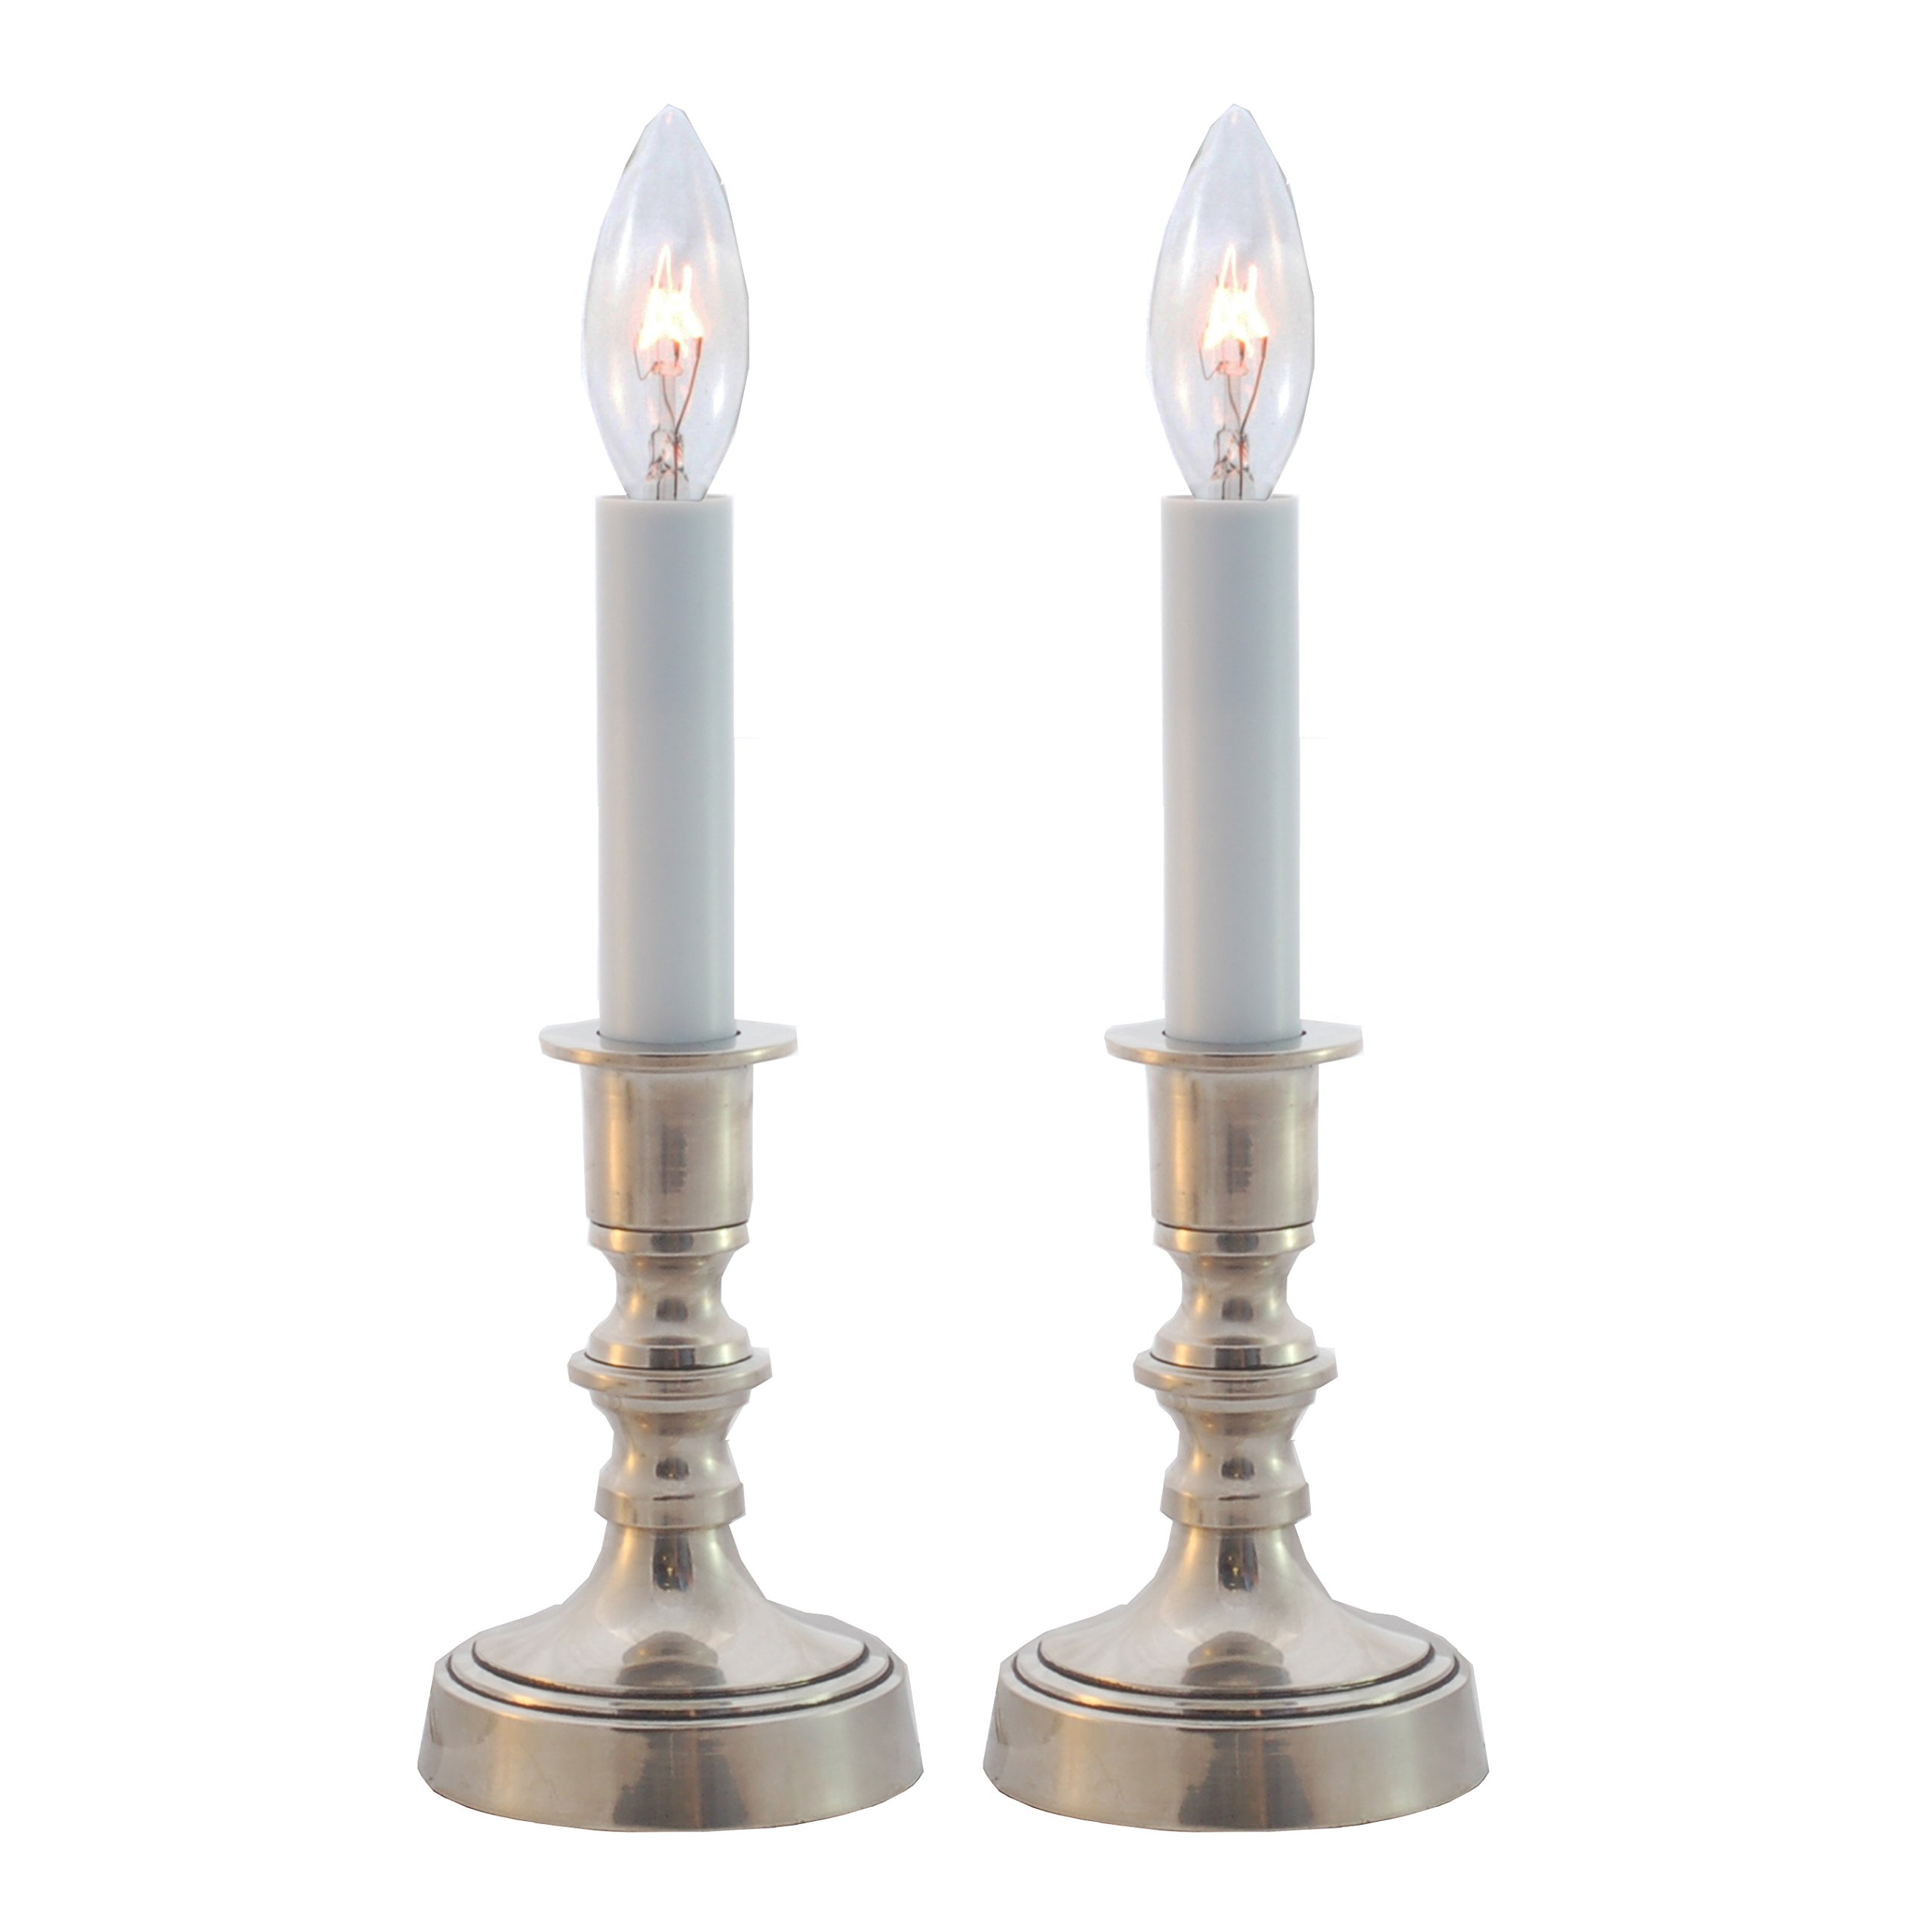 Solid Brass Pewter Finish Window Accent Candle Lamp Set of 2 by Carpenter Creek